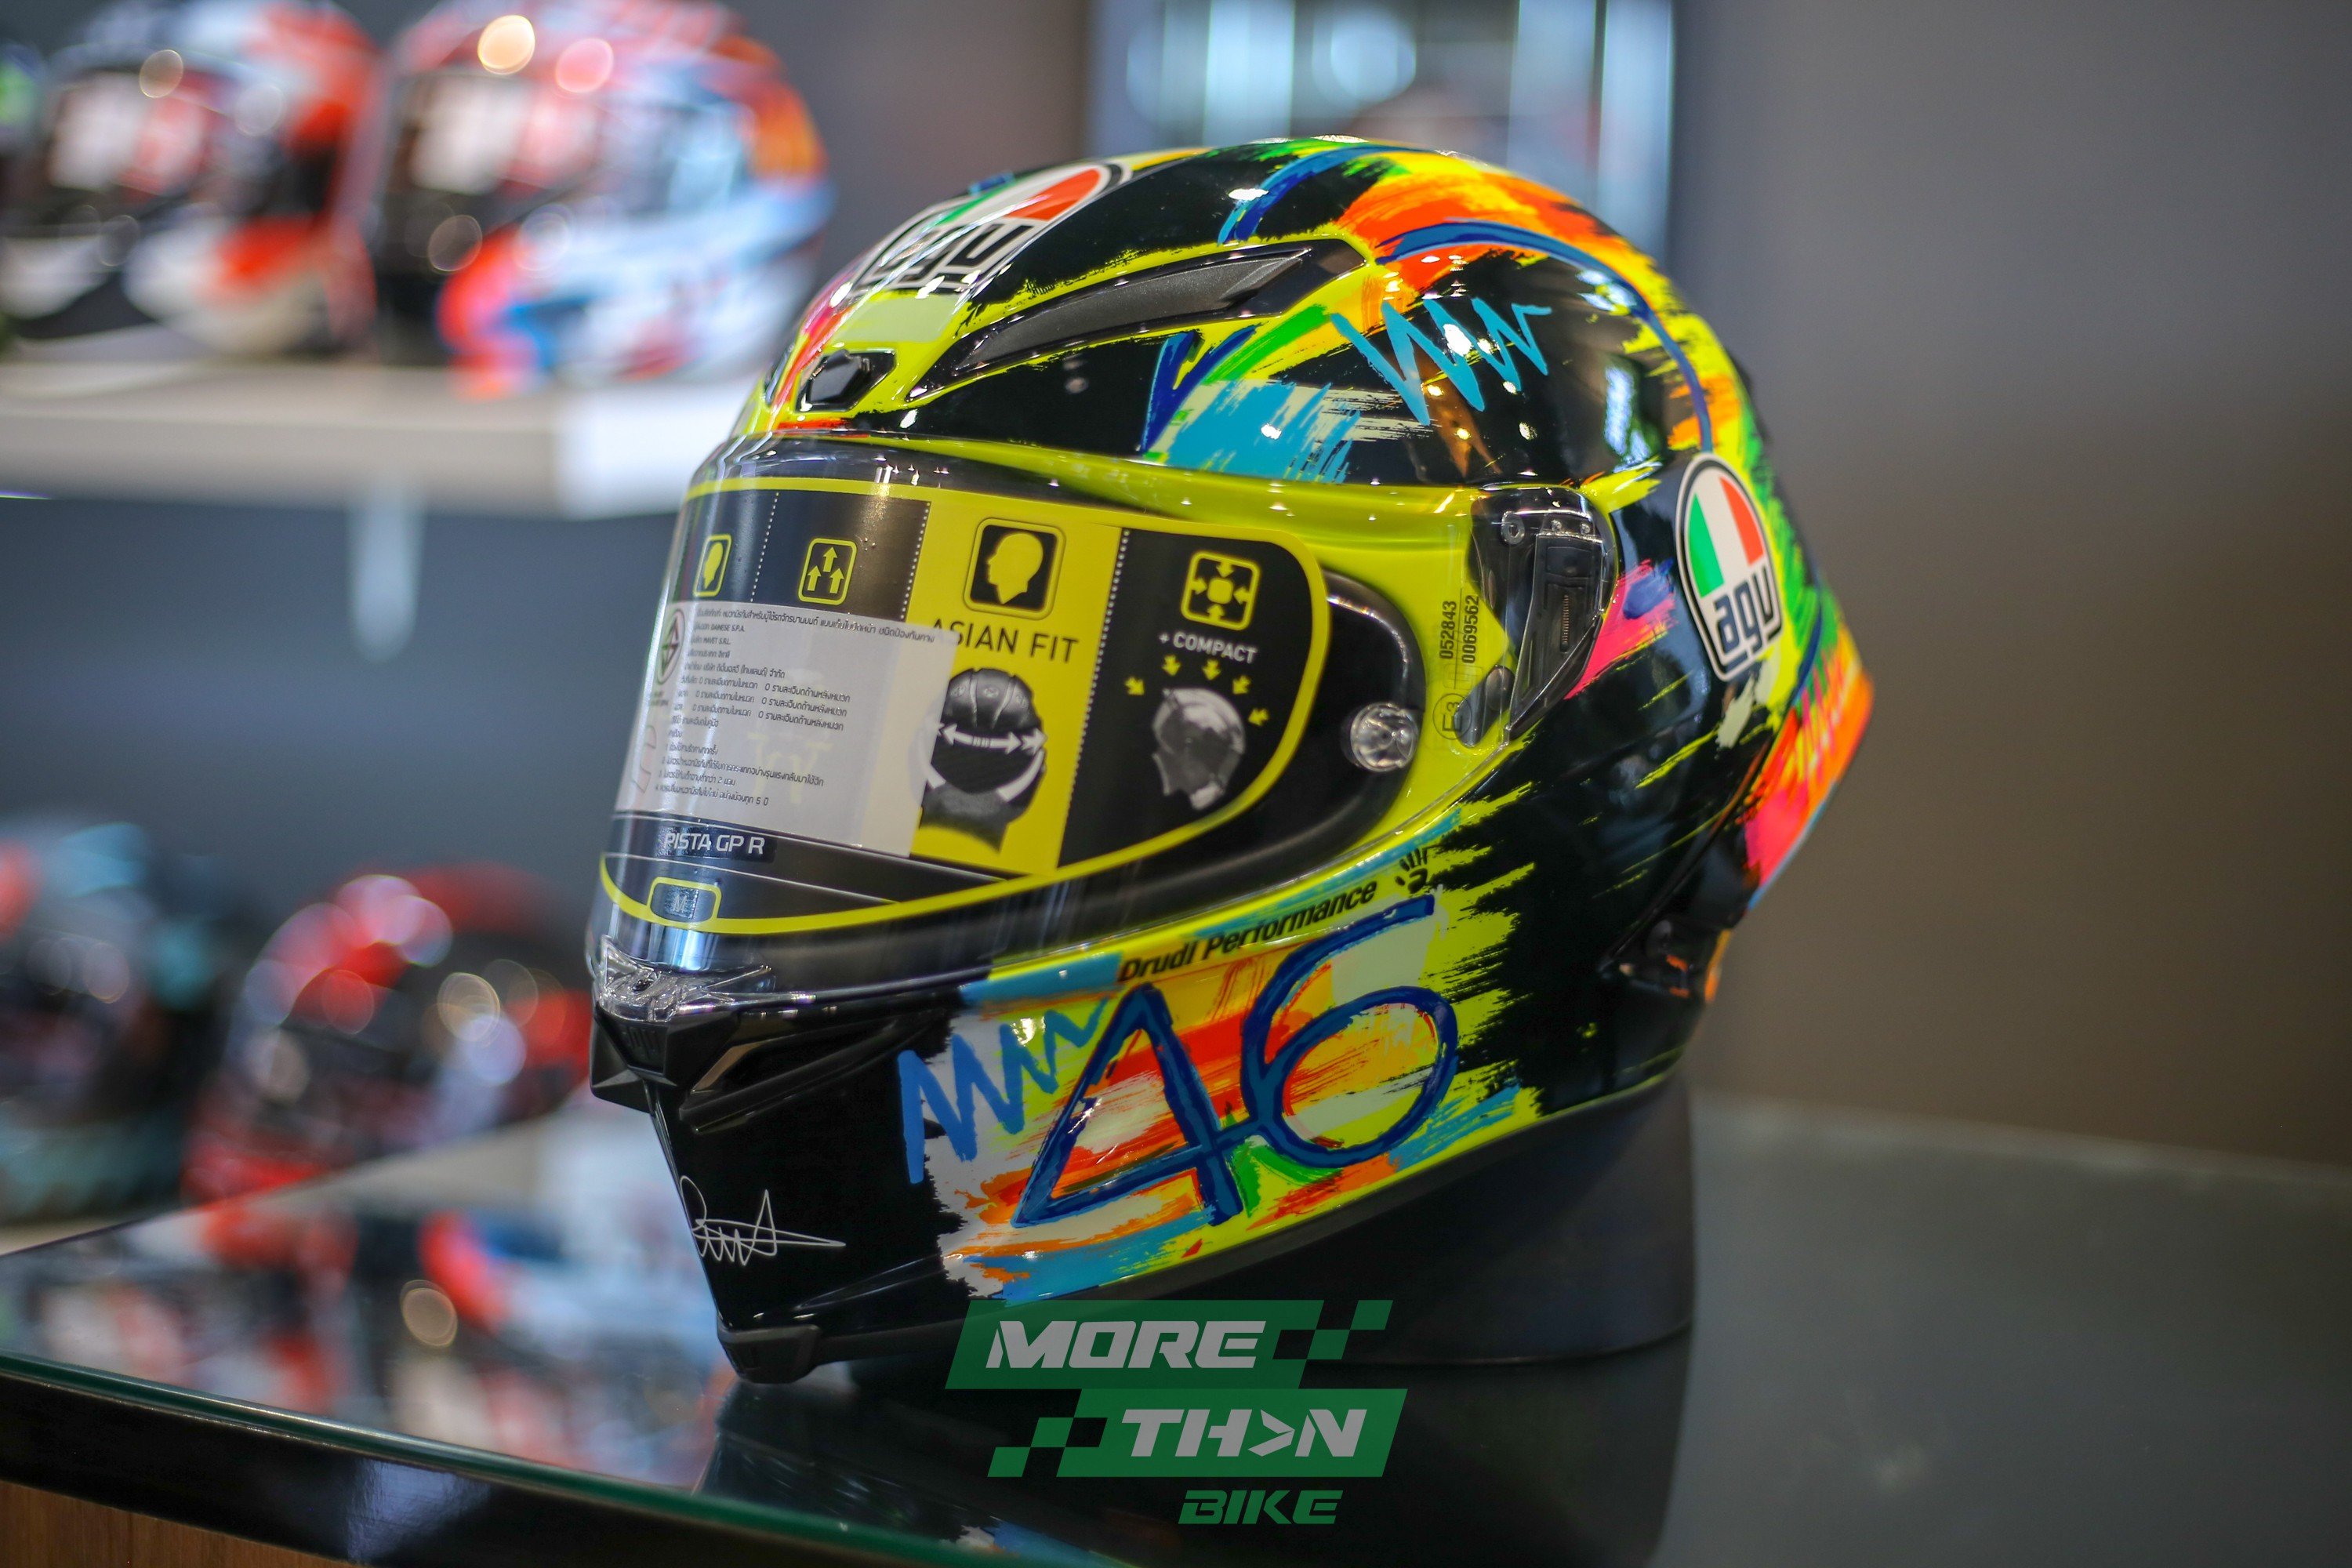 agv-pista-gp-winter-test-2019-1